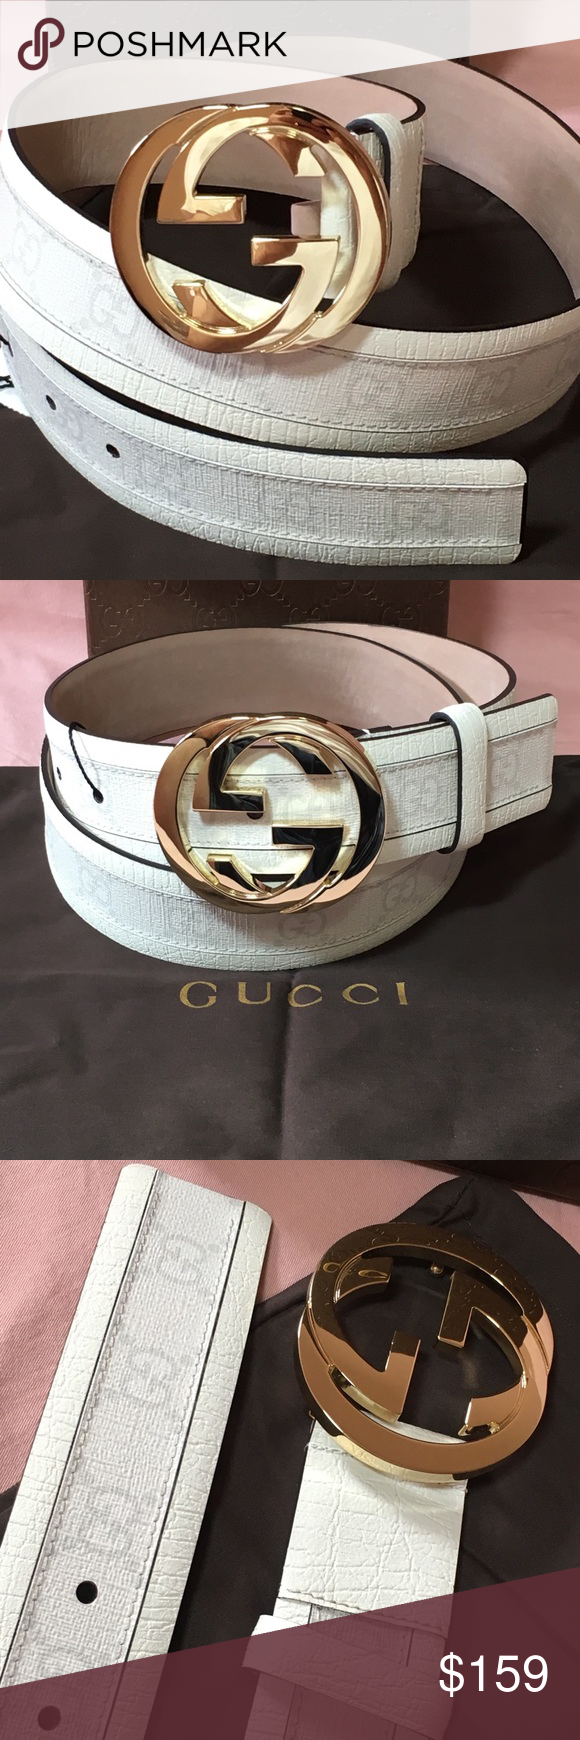 83fdf512ef01 White Leather Gucci belt New with tags, dust bag and box Gucci Accessories  Belts